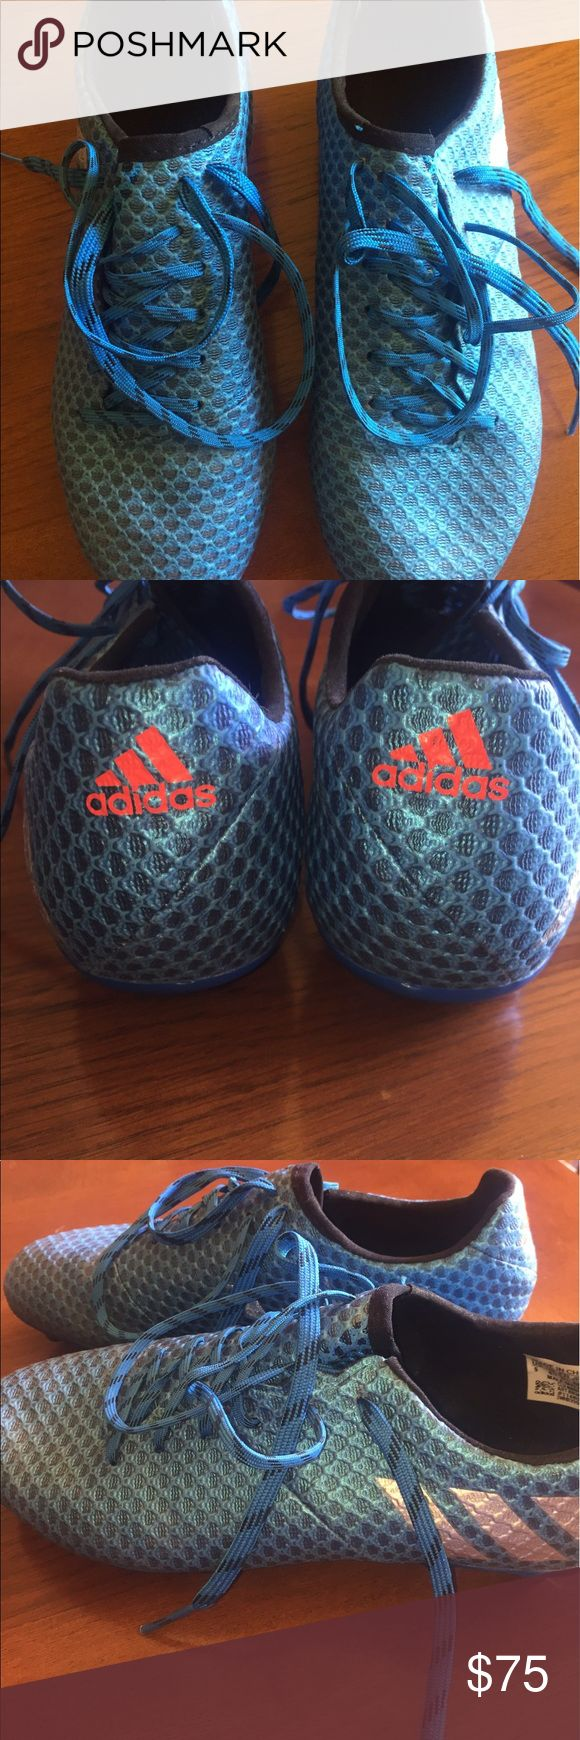 MESSI 2016 cleats! Men's size 5 or women's size 5 worn only a few times in nearly perfect condition!! adidas Shoes Athletic Shoes